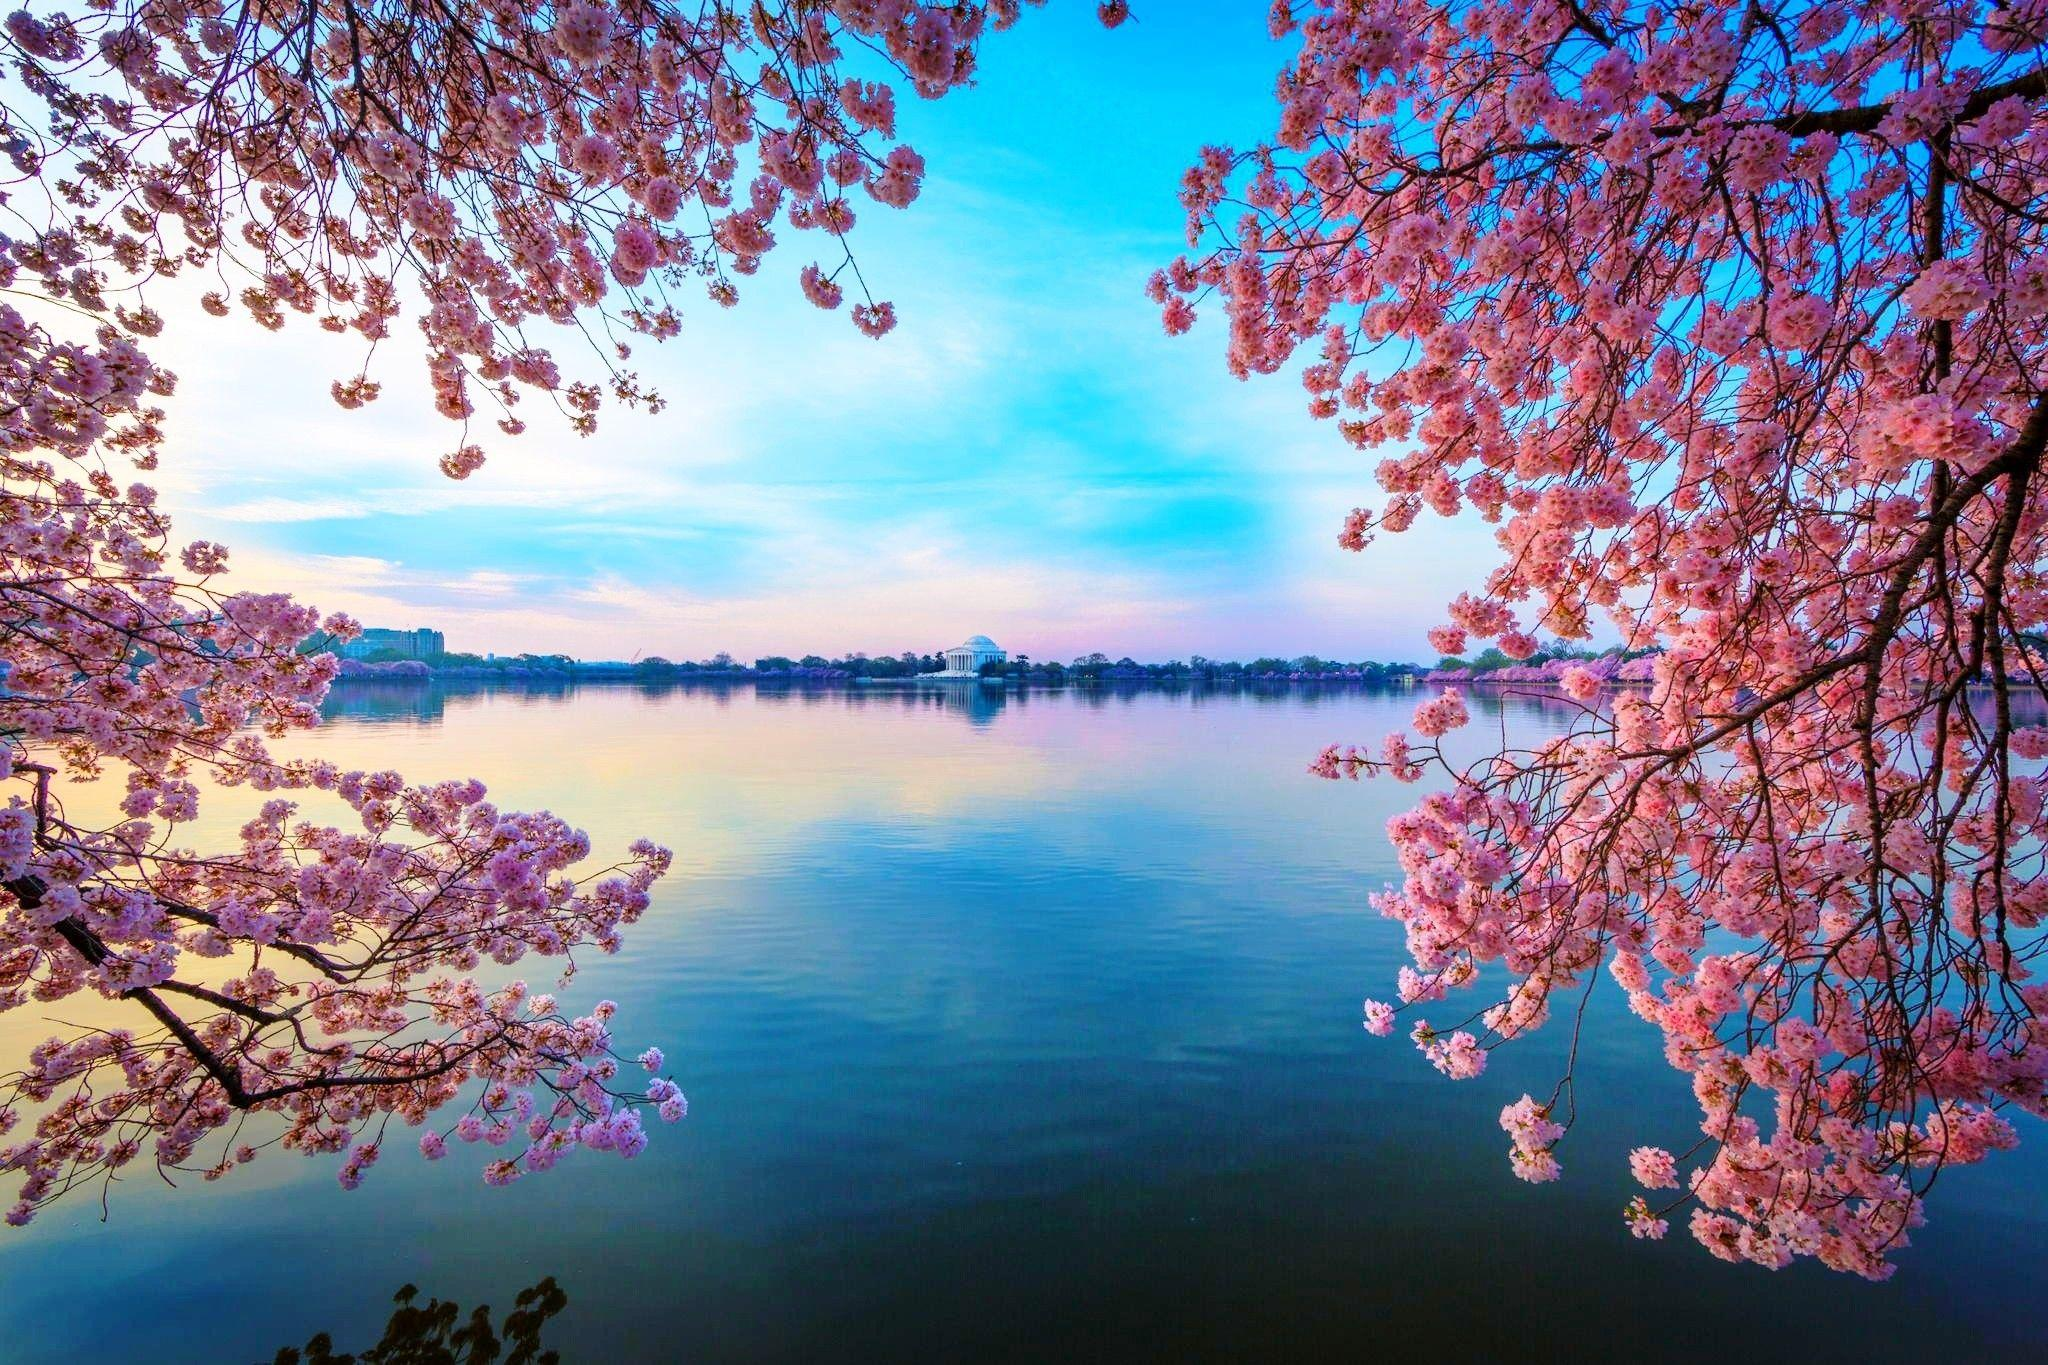 Pink Tree By Lake Wallpapers - Wallpaper Cave